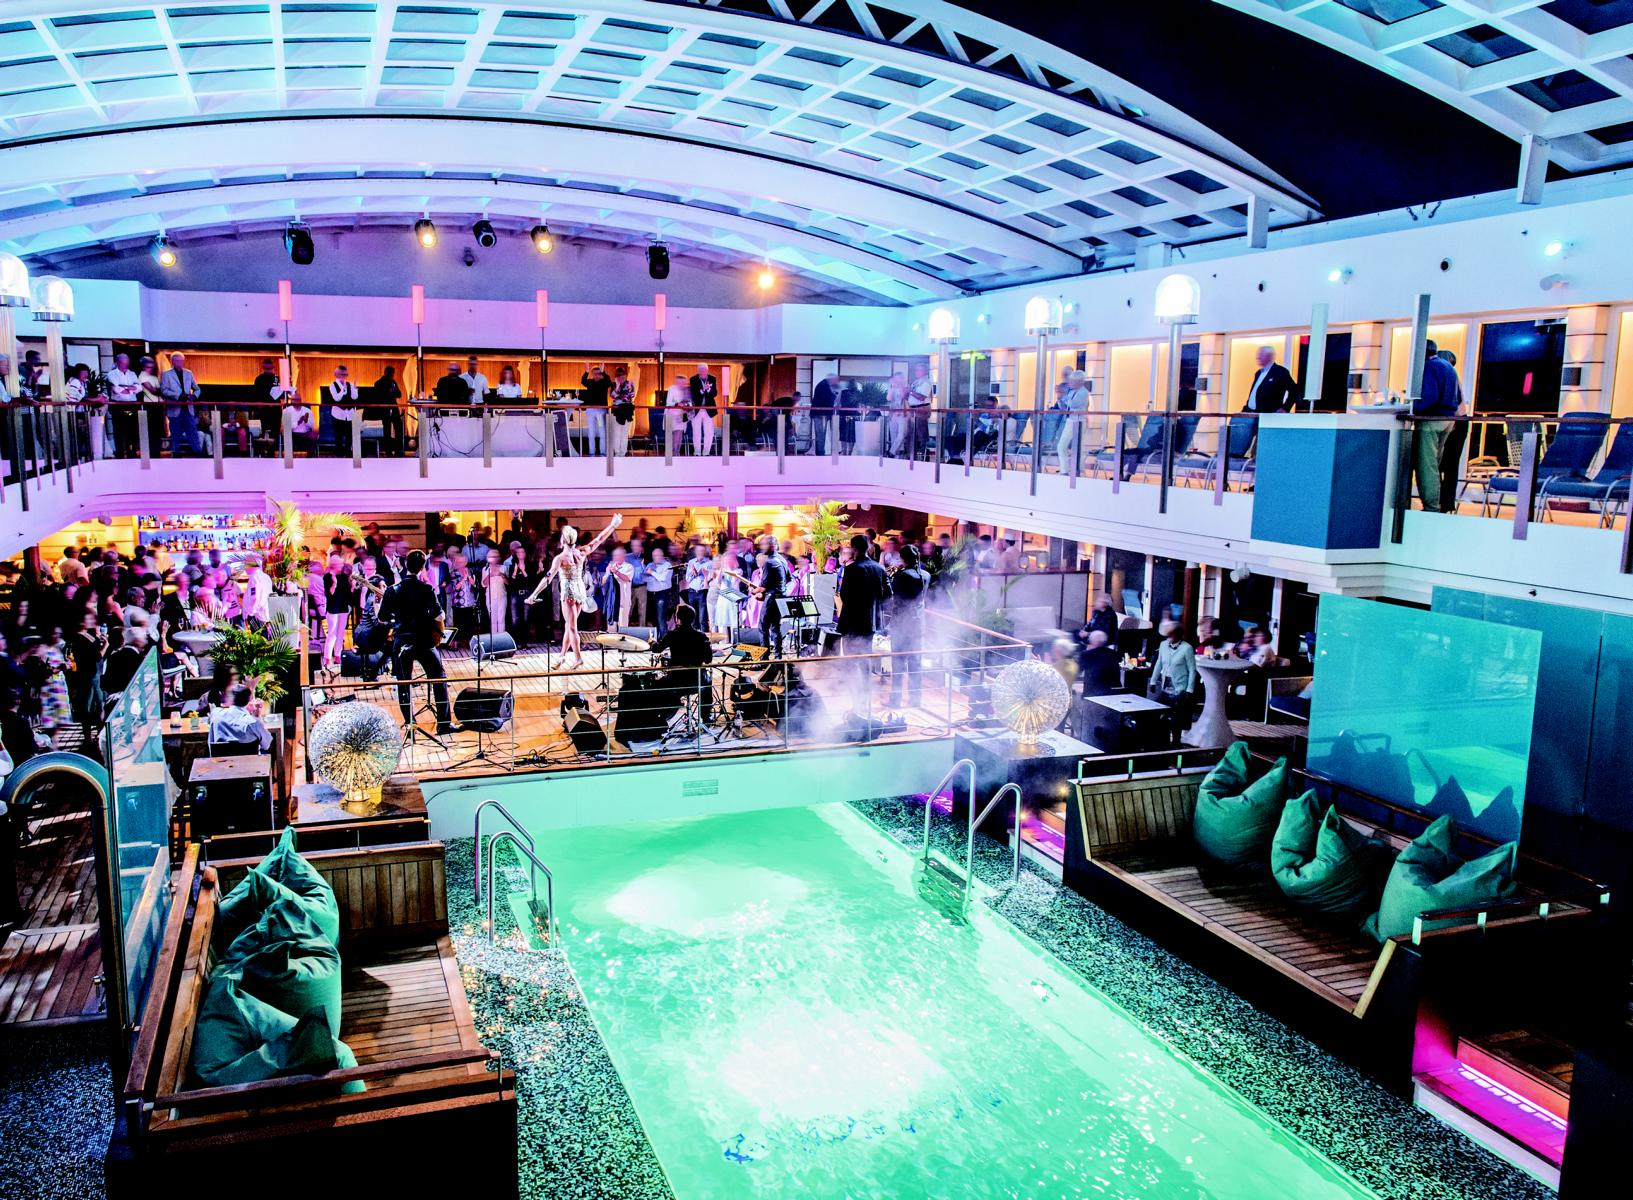 Poolparty an Deck der MS Europa 2